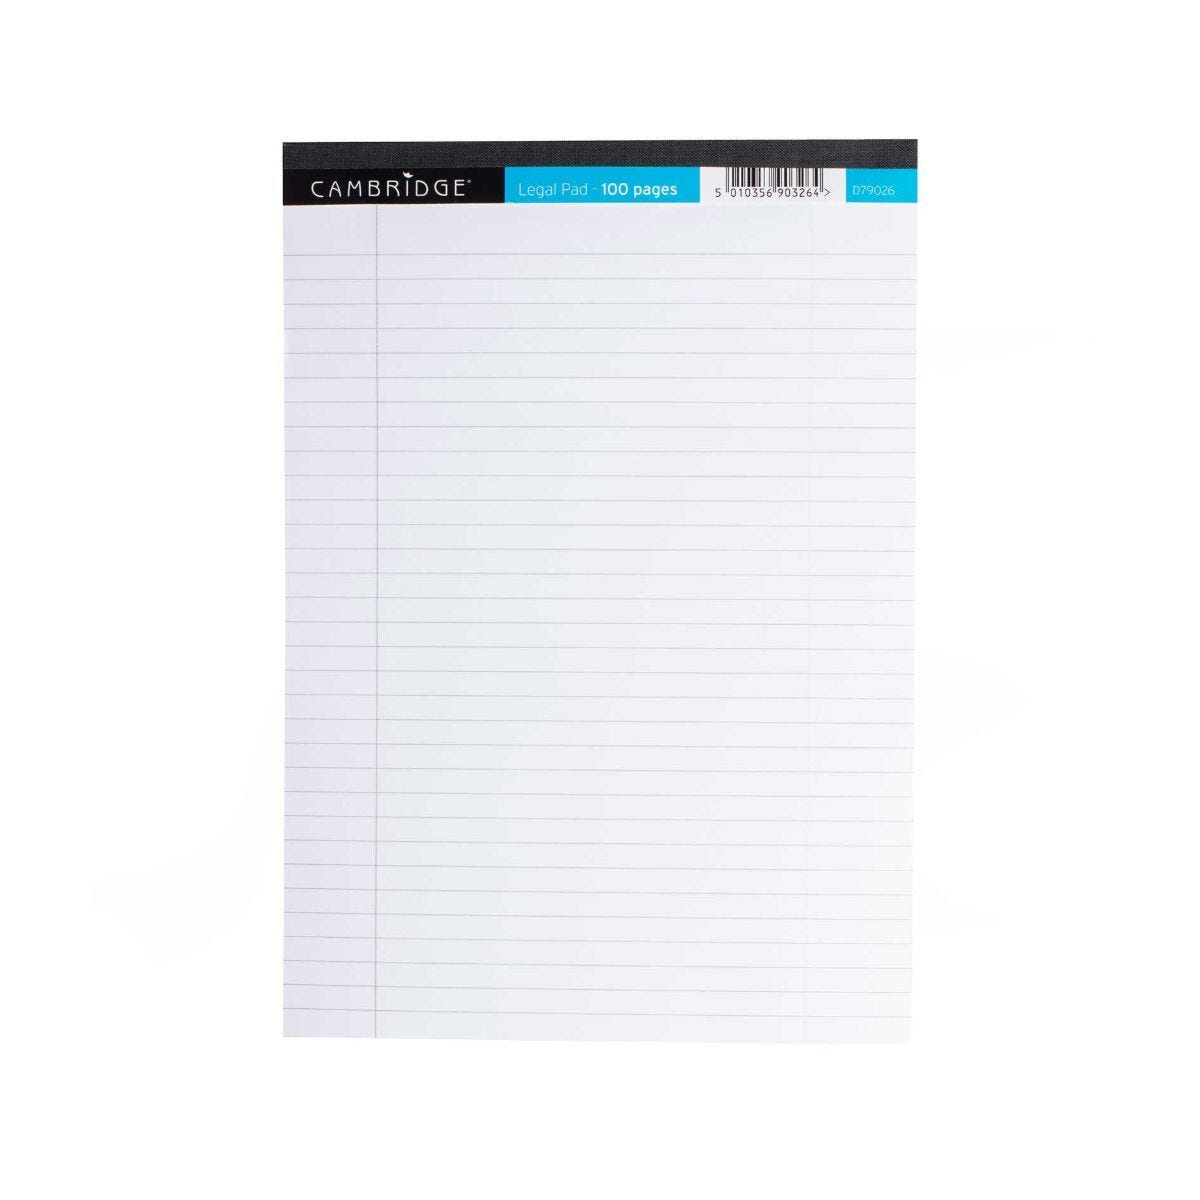 Cambridge Legal Pad Ruled and Margin 100 pages 70gsm Pack of 10 White